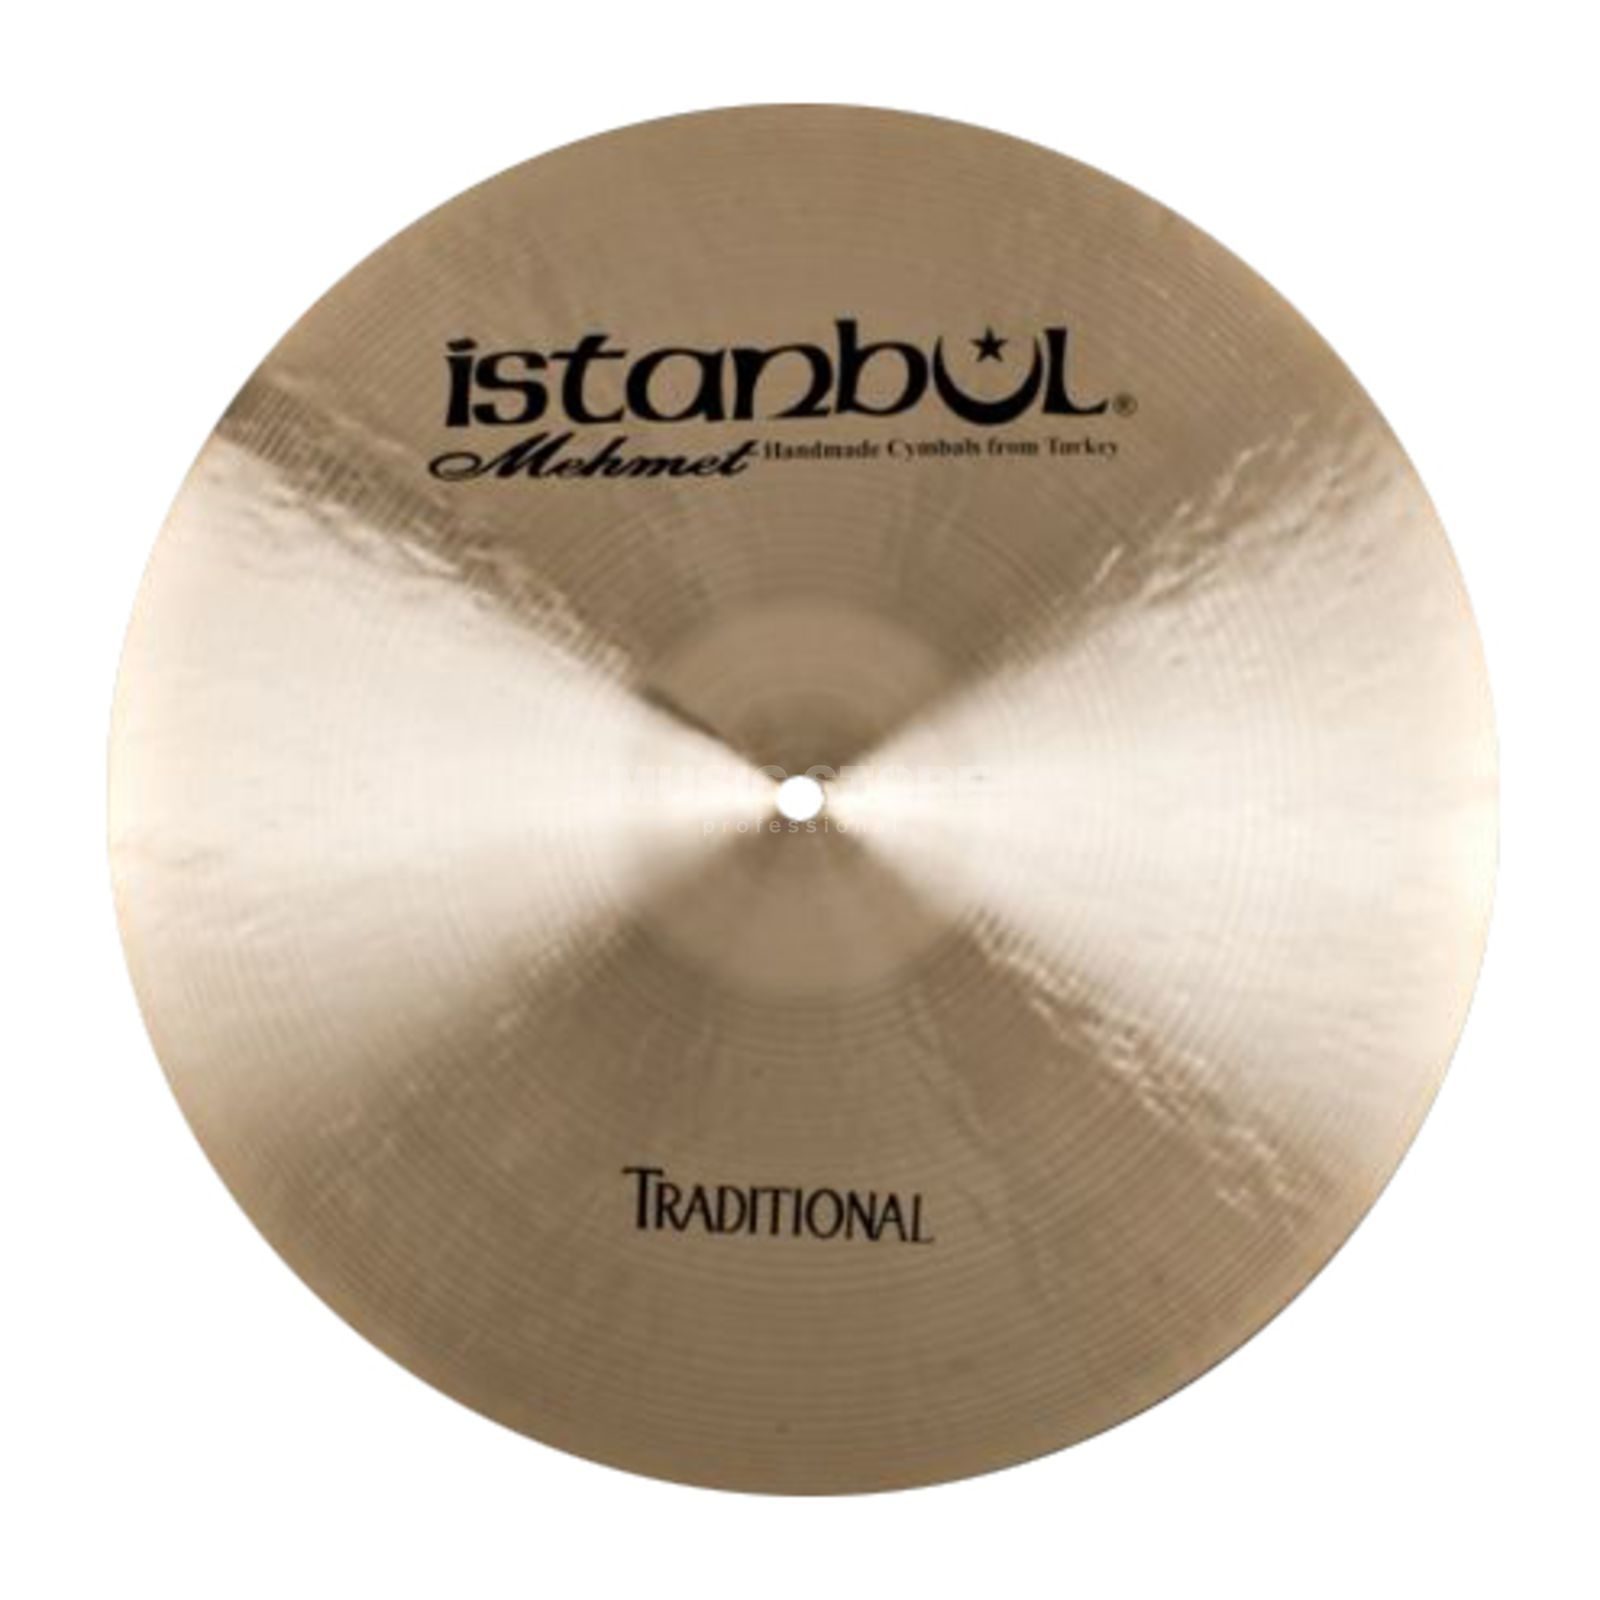 "Istanbul Traditional Dark Crash 16"", CD17 Product Image"